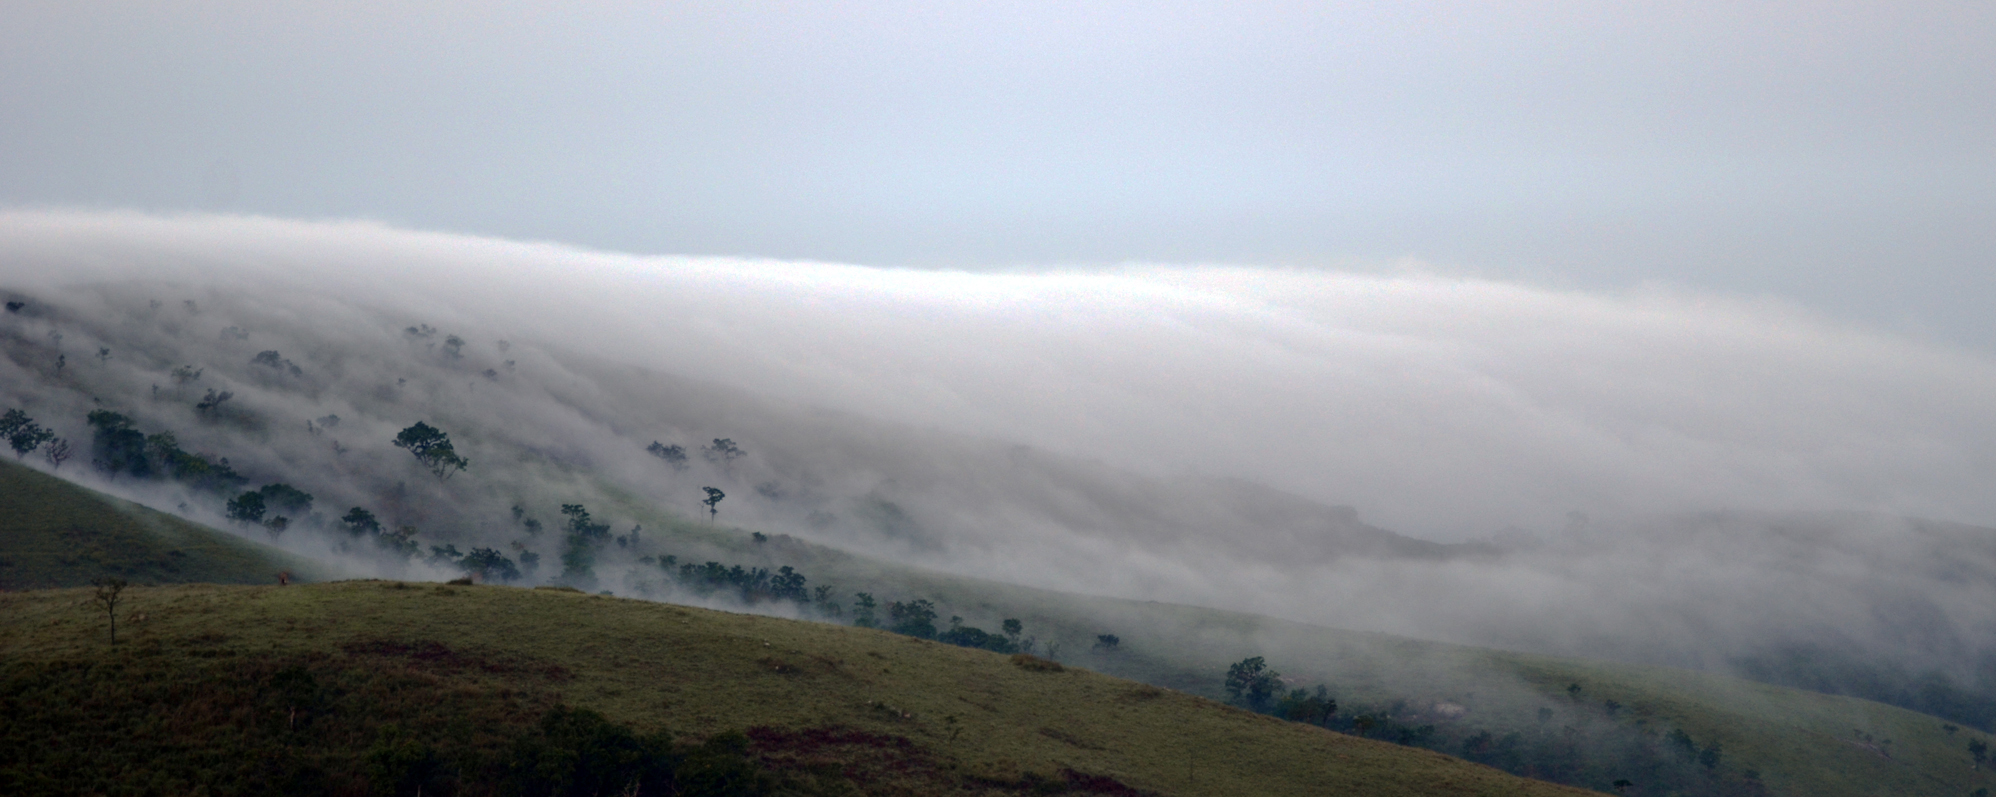 fog covering the hill